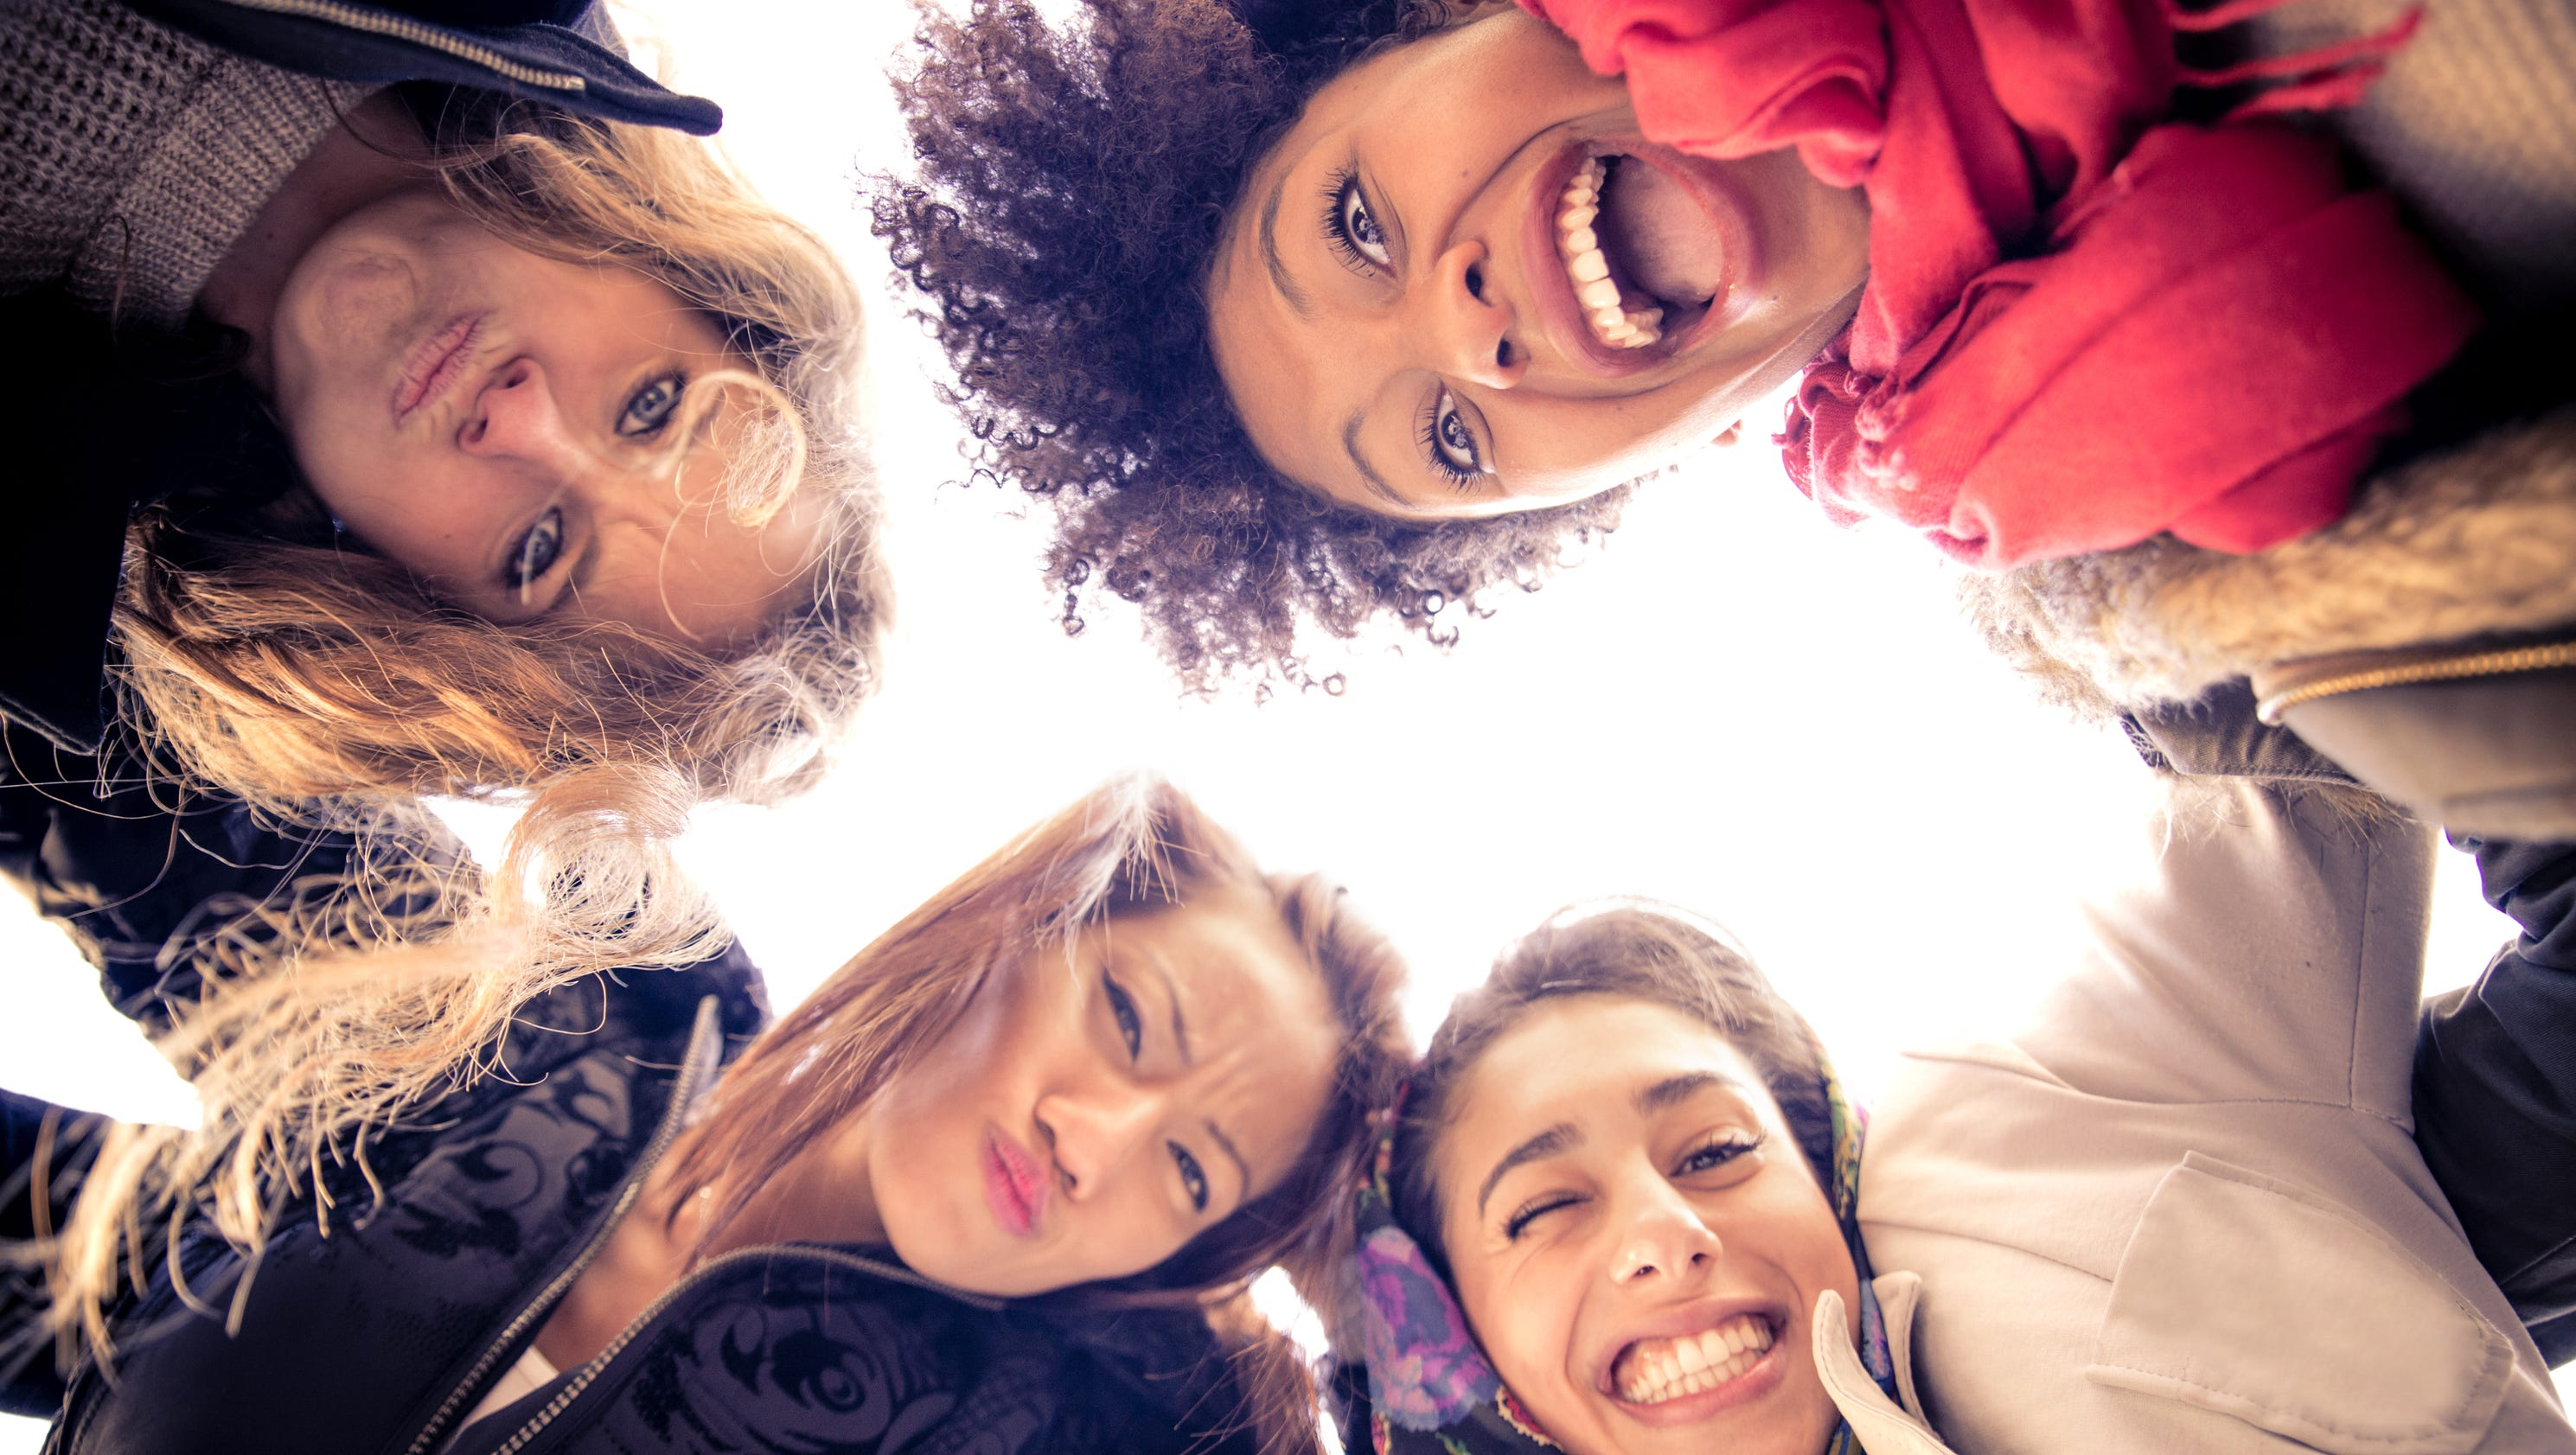 How to find female friends who lift you up